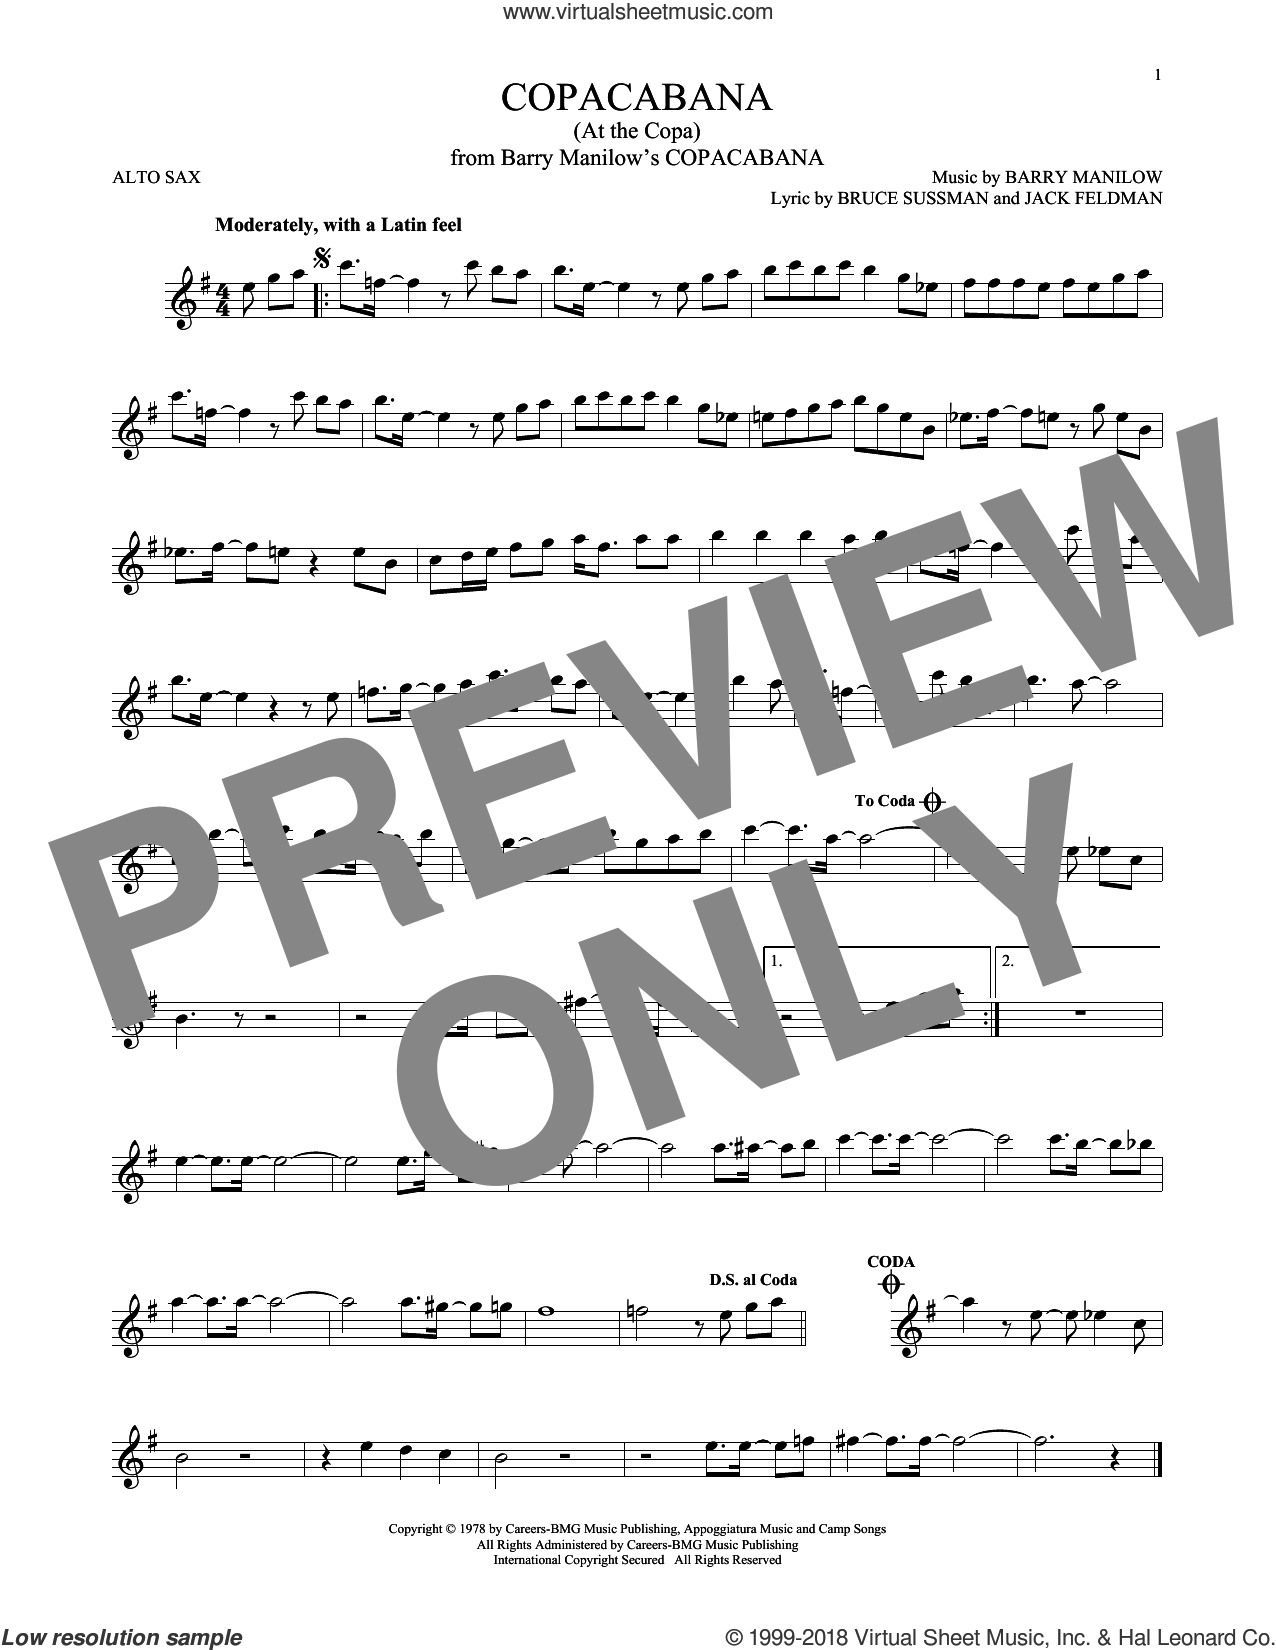 Copacabana (At The Copa) sheet music for alto saxophone solo by Barry Manilow, Bruce Sussman and Jack Feldman, intermediate skill level